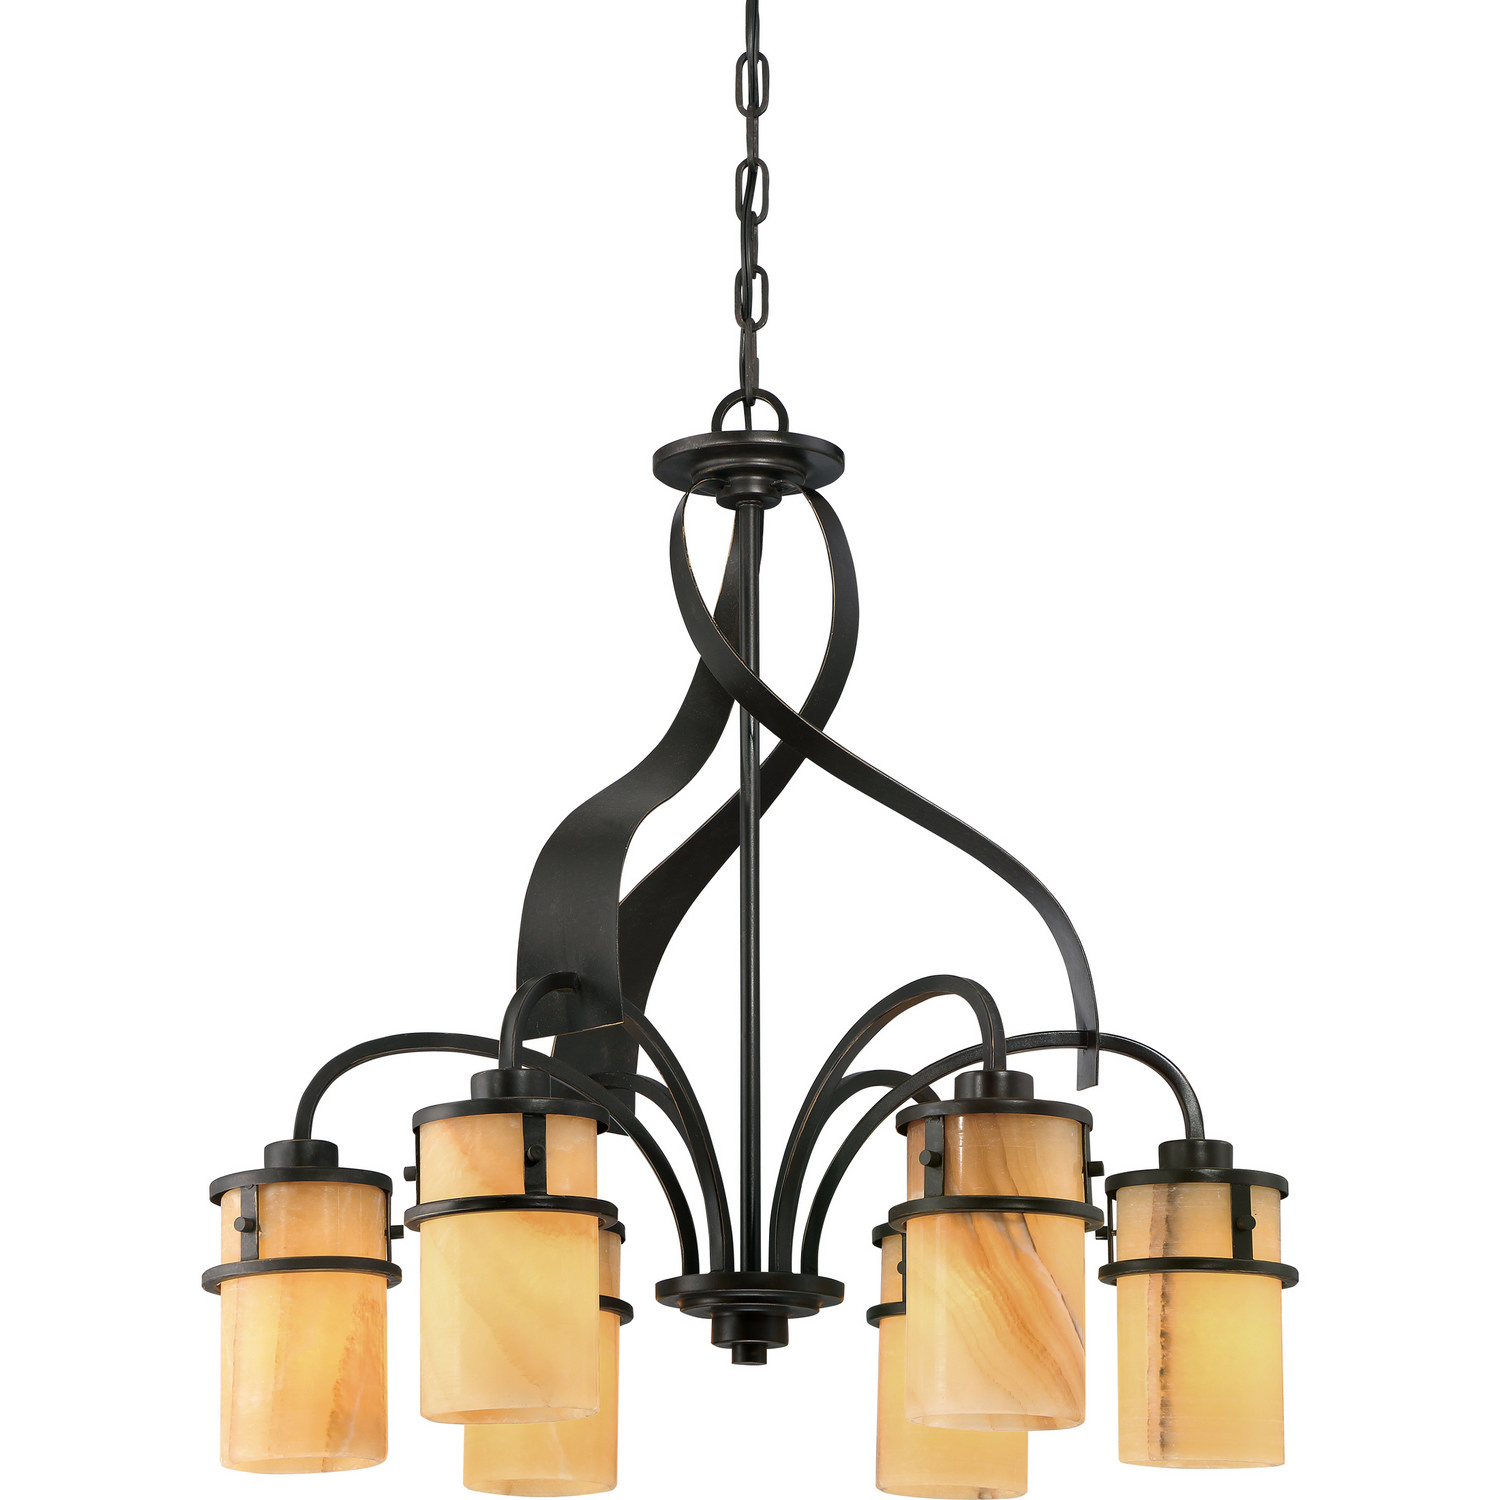 Quoizel Kyle Chandelier craftsman lighting